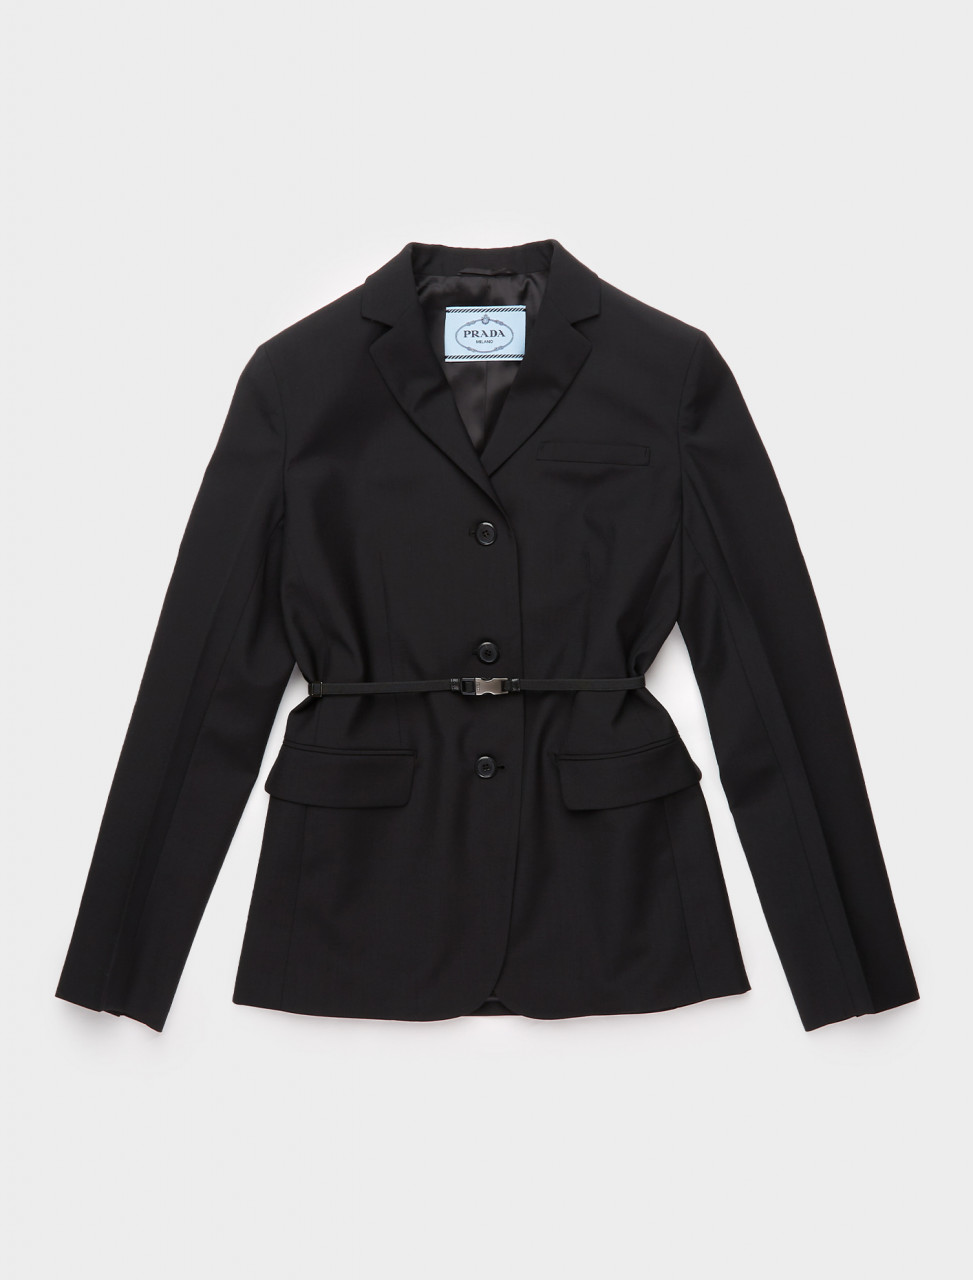 P575LH-F0002 PRADA LIGHTWEIGHT SINGLE BREASTED JACKET WITH BELT IN BLACK